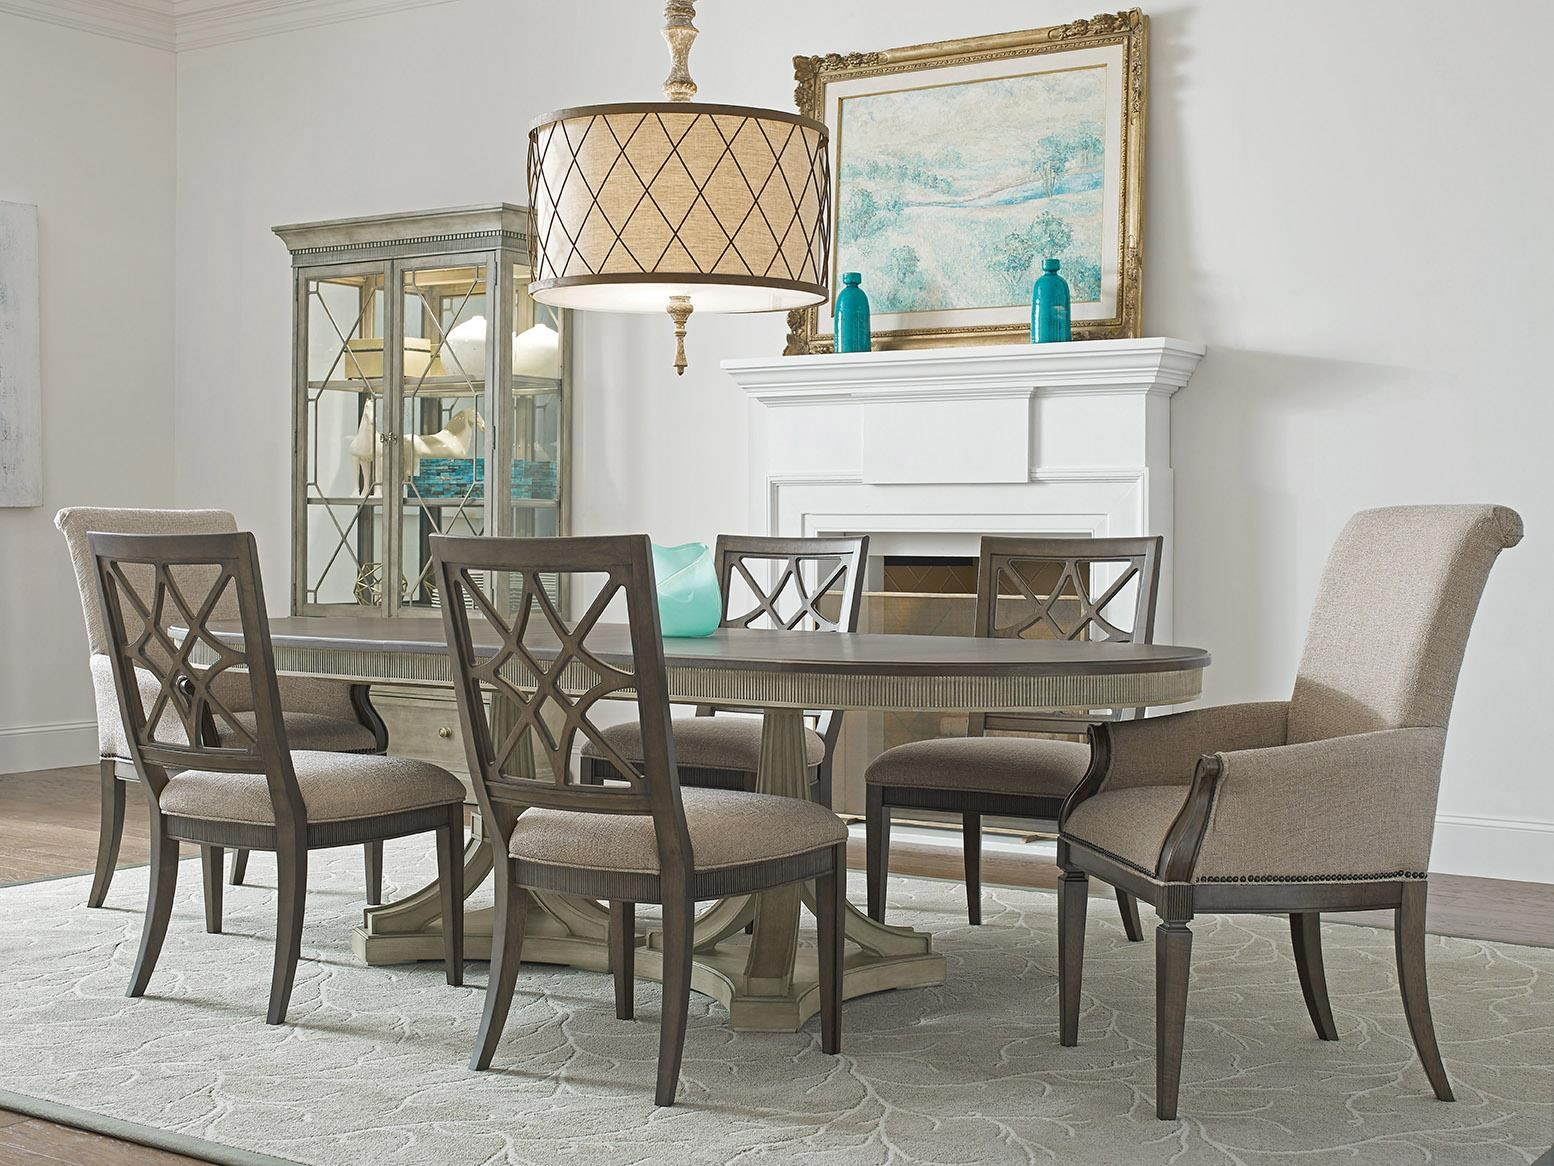 Savona Dining Table, Side Chair, Arm Chair by American Drew at Johnny Janosik